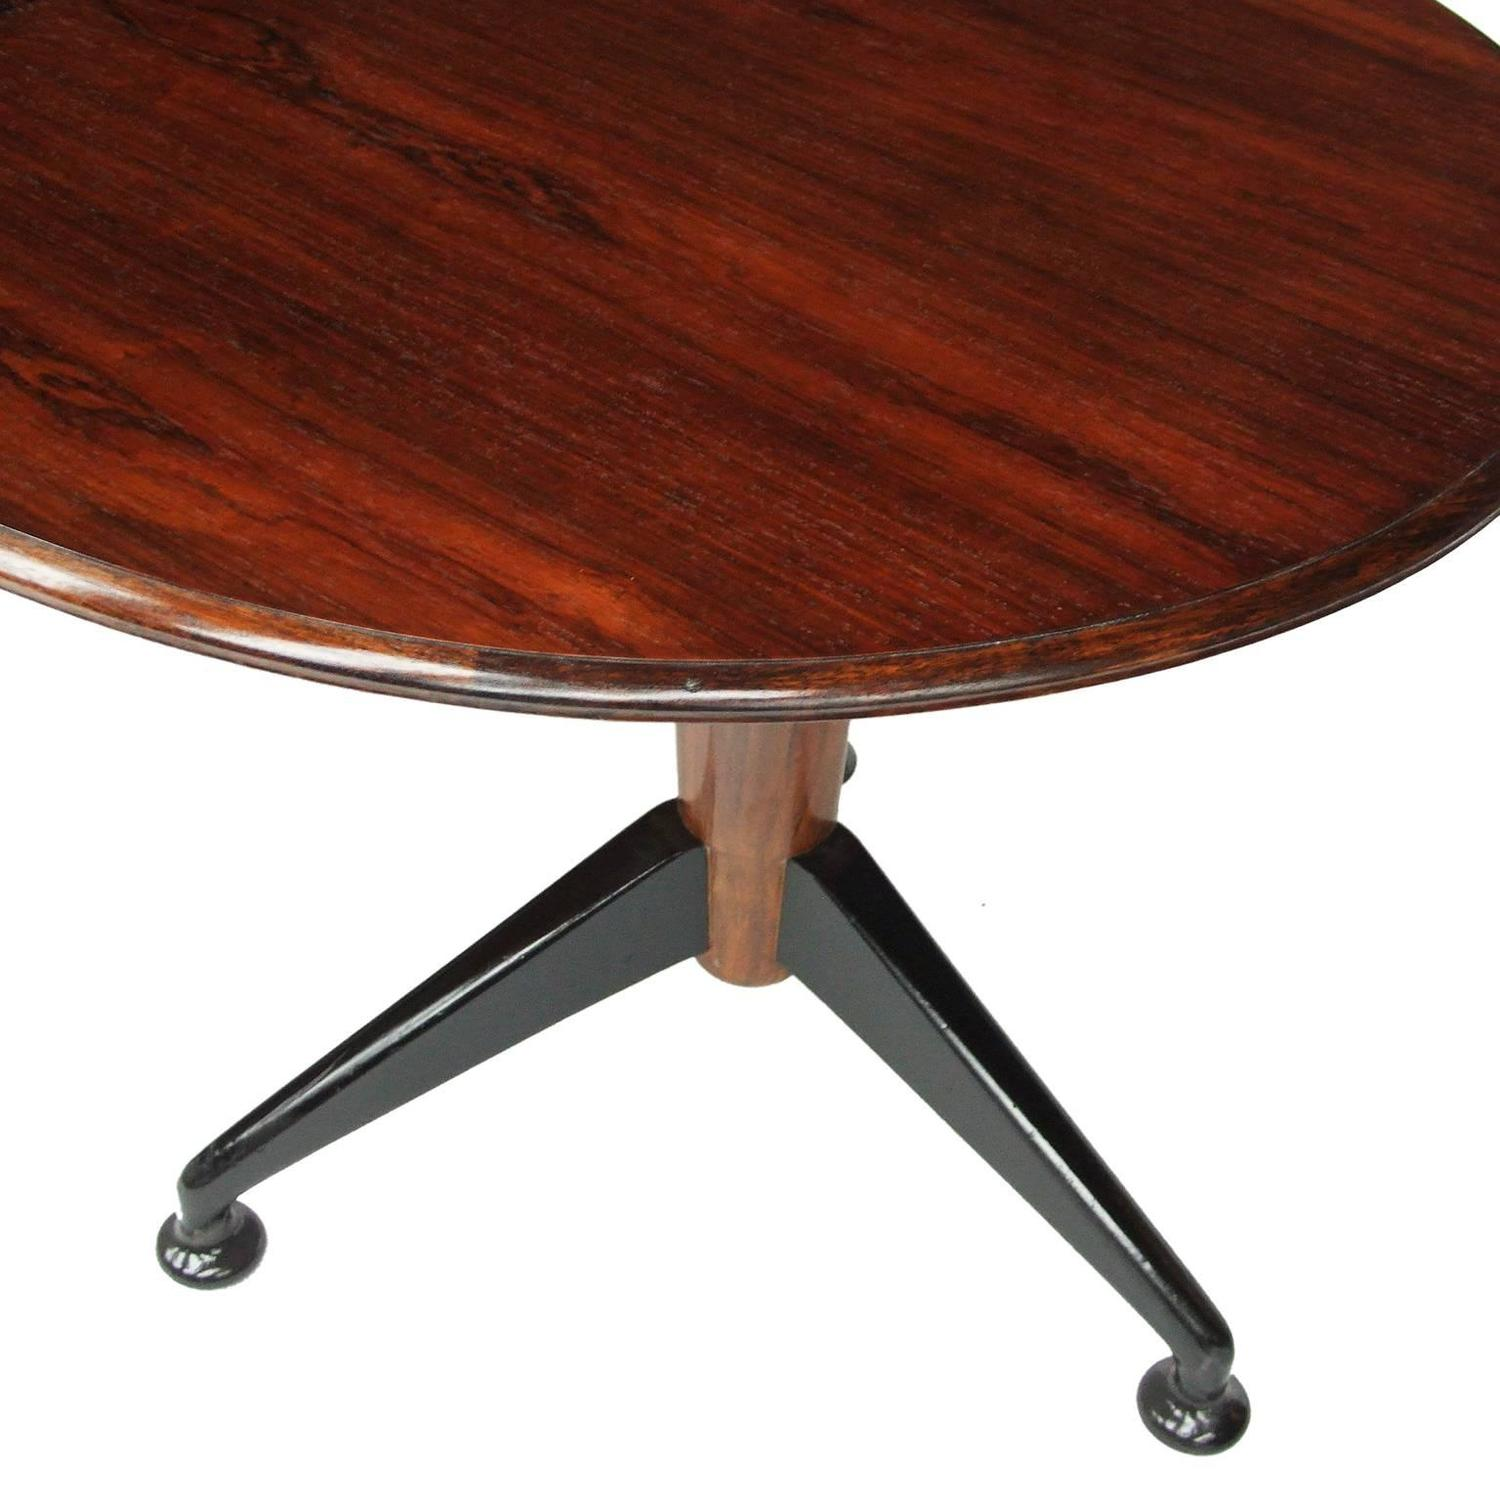 1950s Rosewood Extentable Dining Table By A J Milne For Heals For Sale At 1stdibs